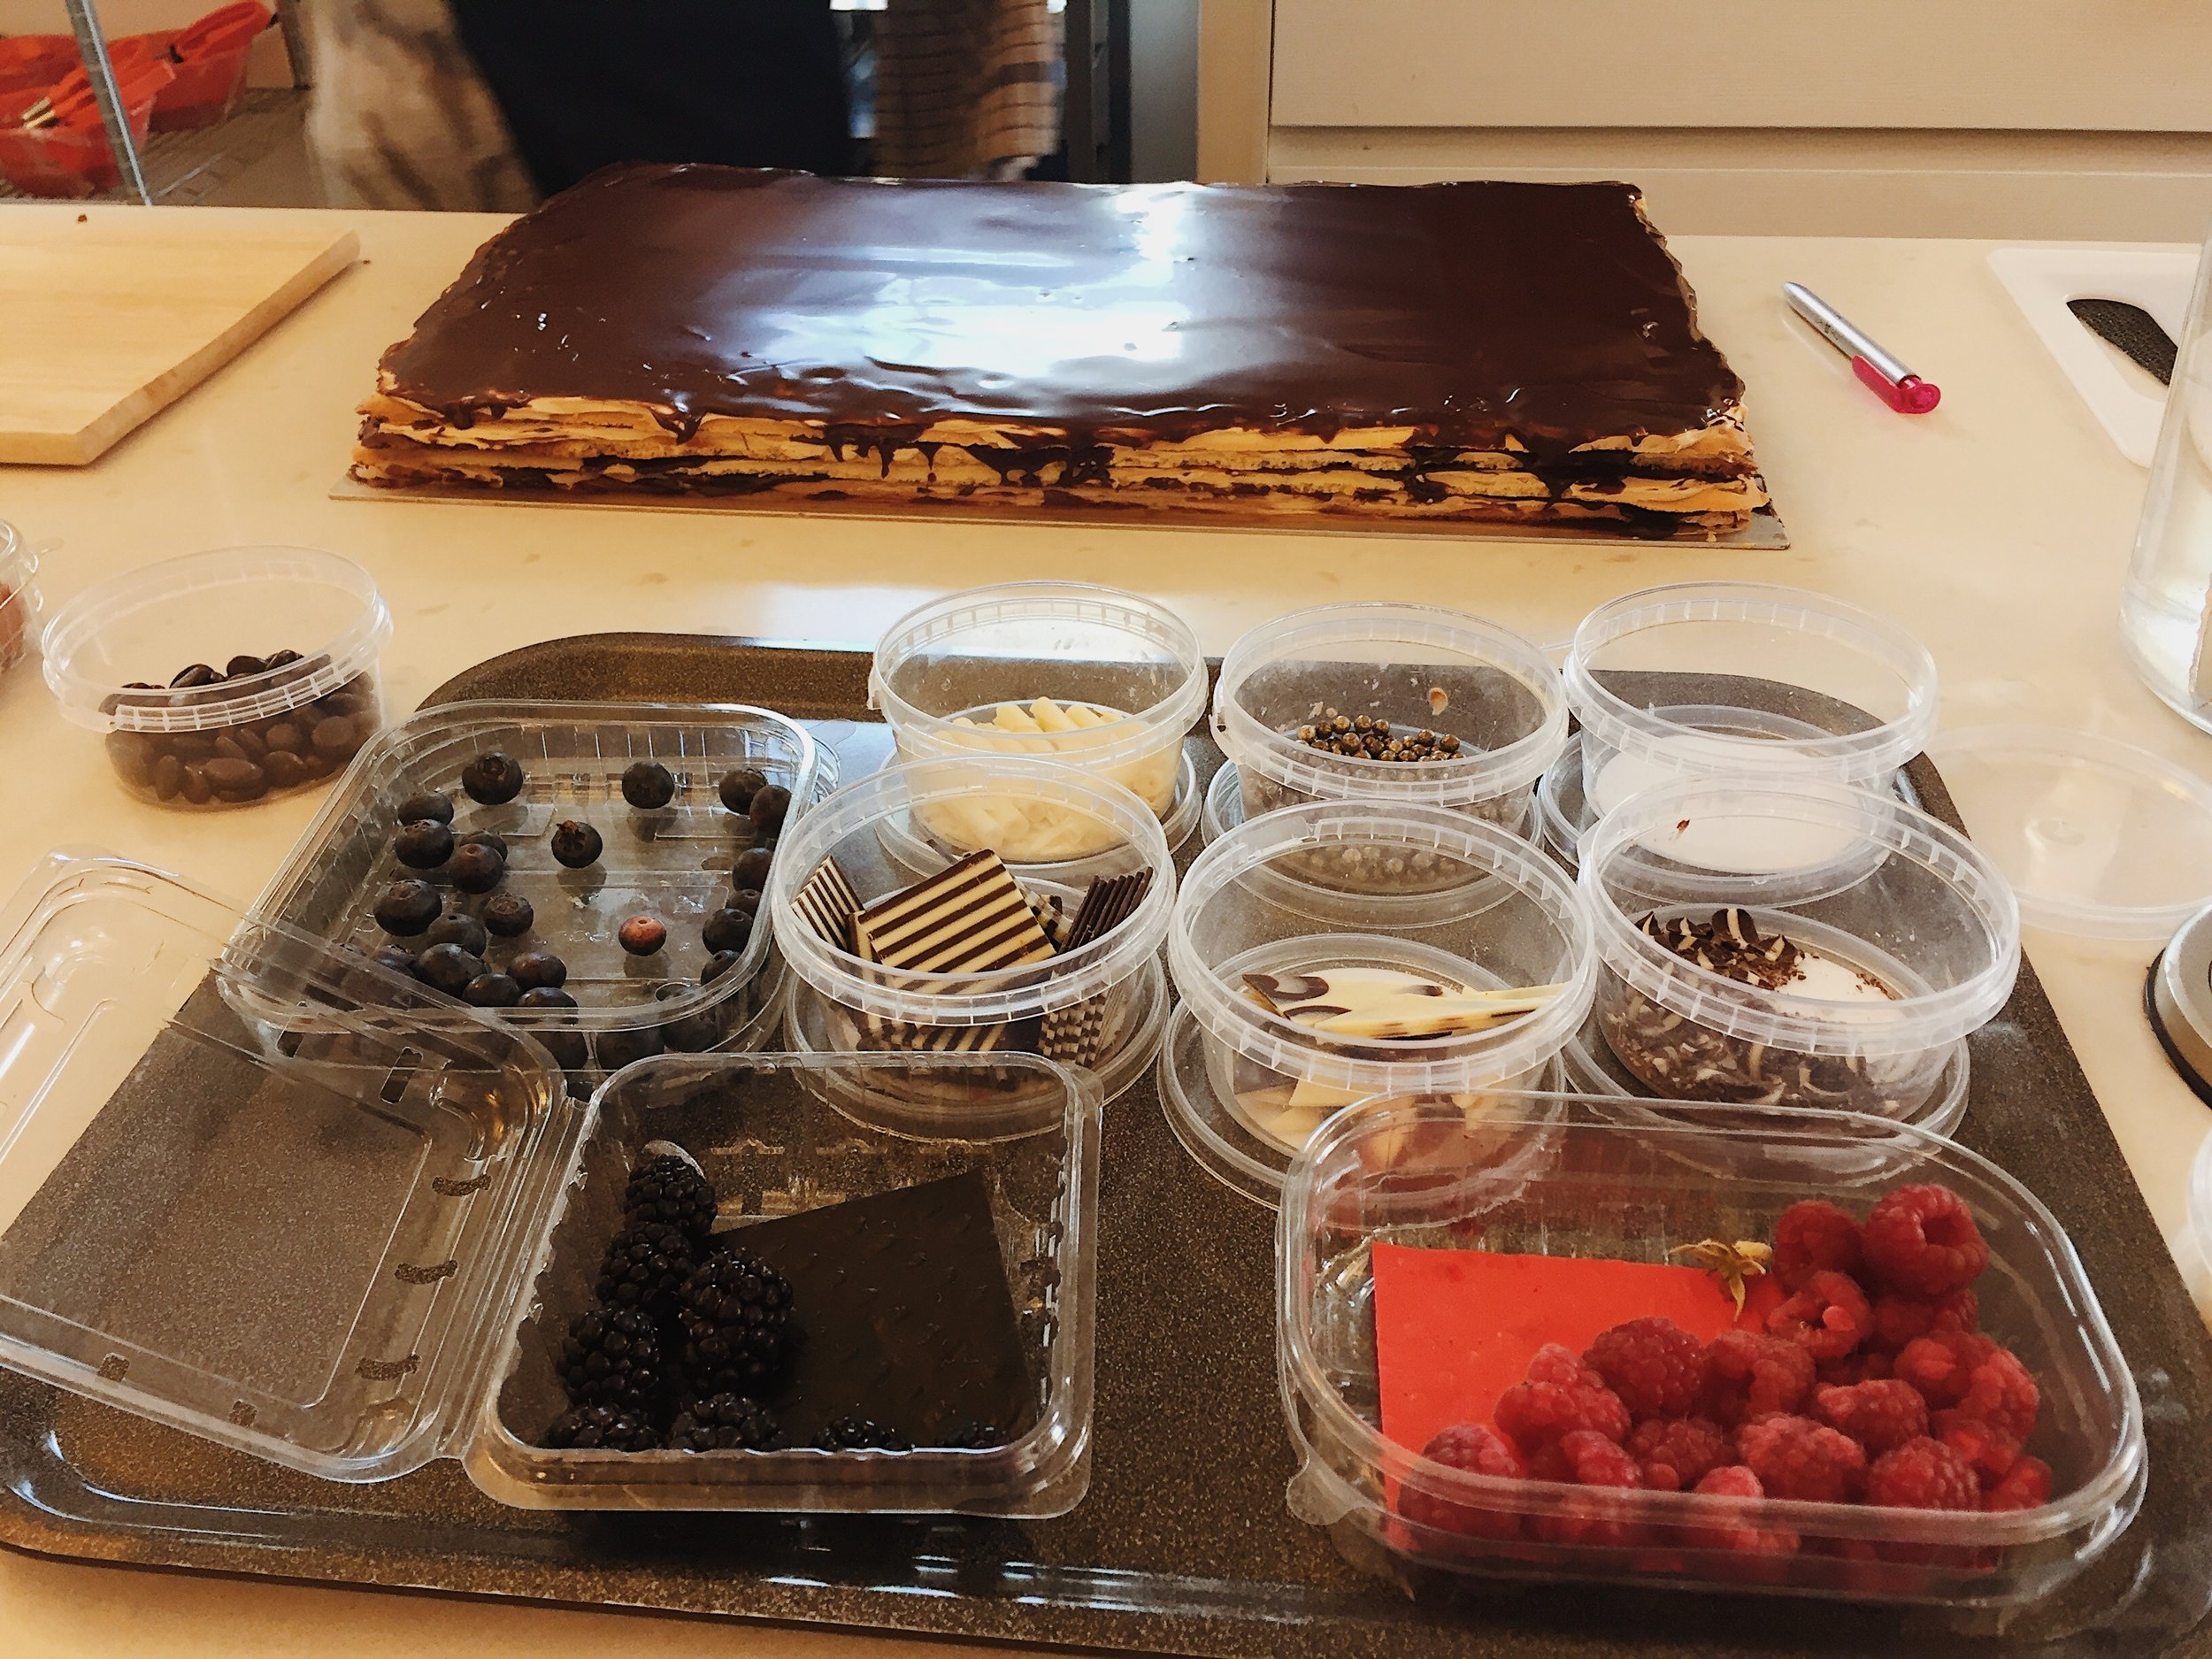 A Gateaux Opera in the making...finished products below!